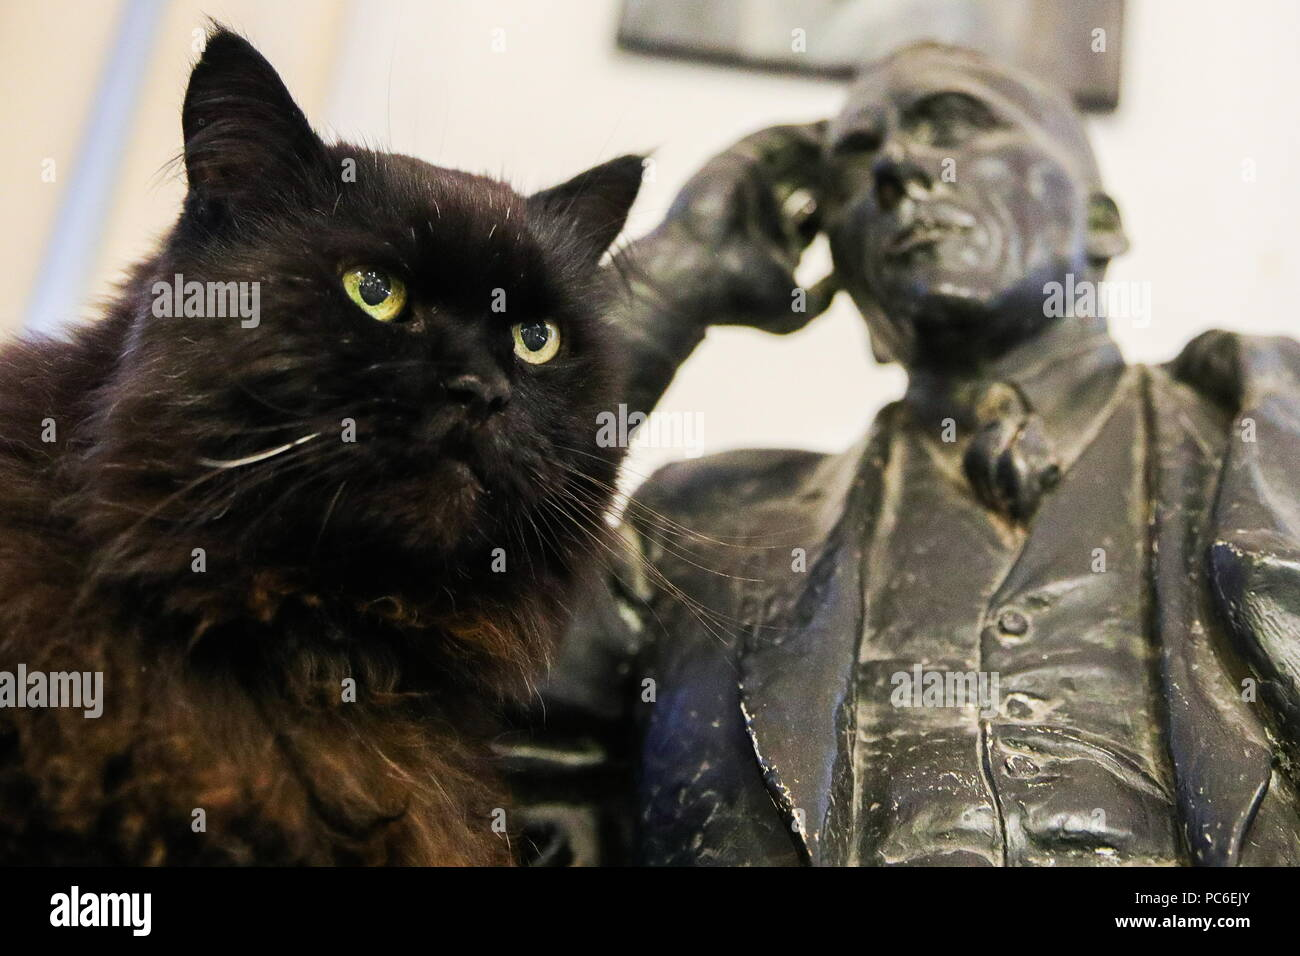 Moscow, Russia. 01st Aug, 2018. MOSCOW, RUSSIA - AUGUST 1, 2018: Begemot the Cat named after Behemoth, a character from The Master and Margarita novel by Russian writer Mikhail Bulgakov, at the Bulgakov House. The black cat was reportedly abducted from the museum and found by police on August 1, 2018. Sergei Bobylev/TASS Credit: ITAR-TASS News Agency/Alamy Live News - Stock Image